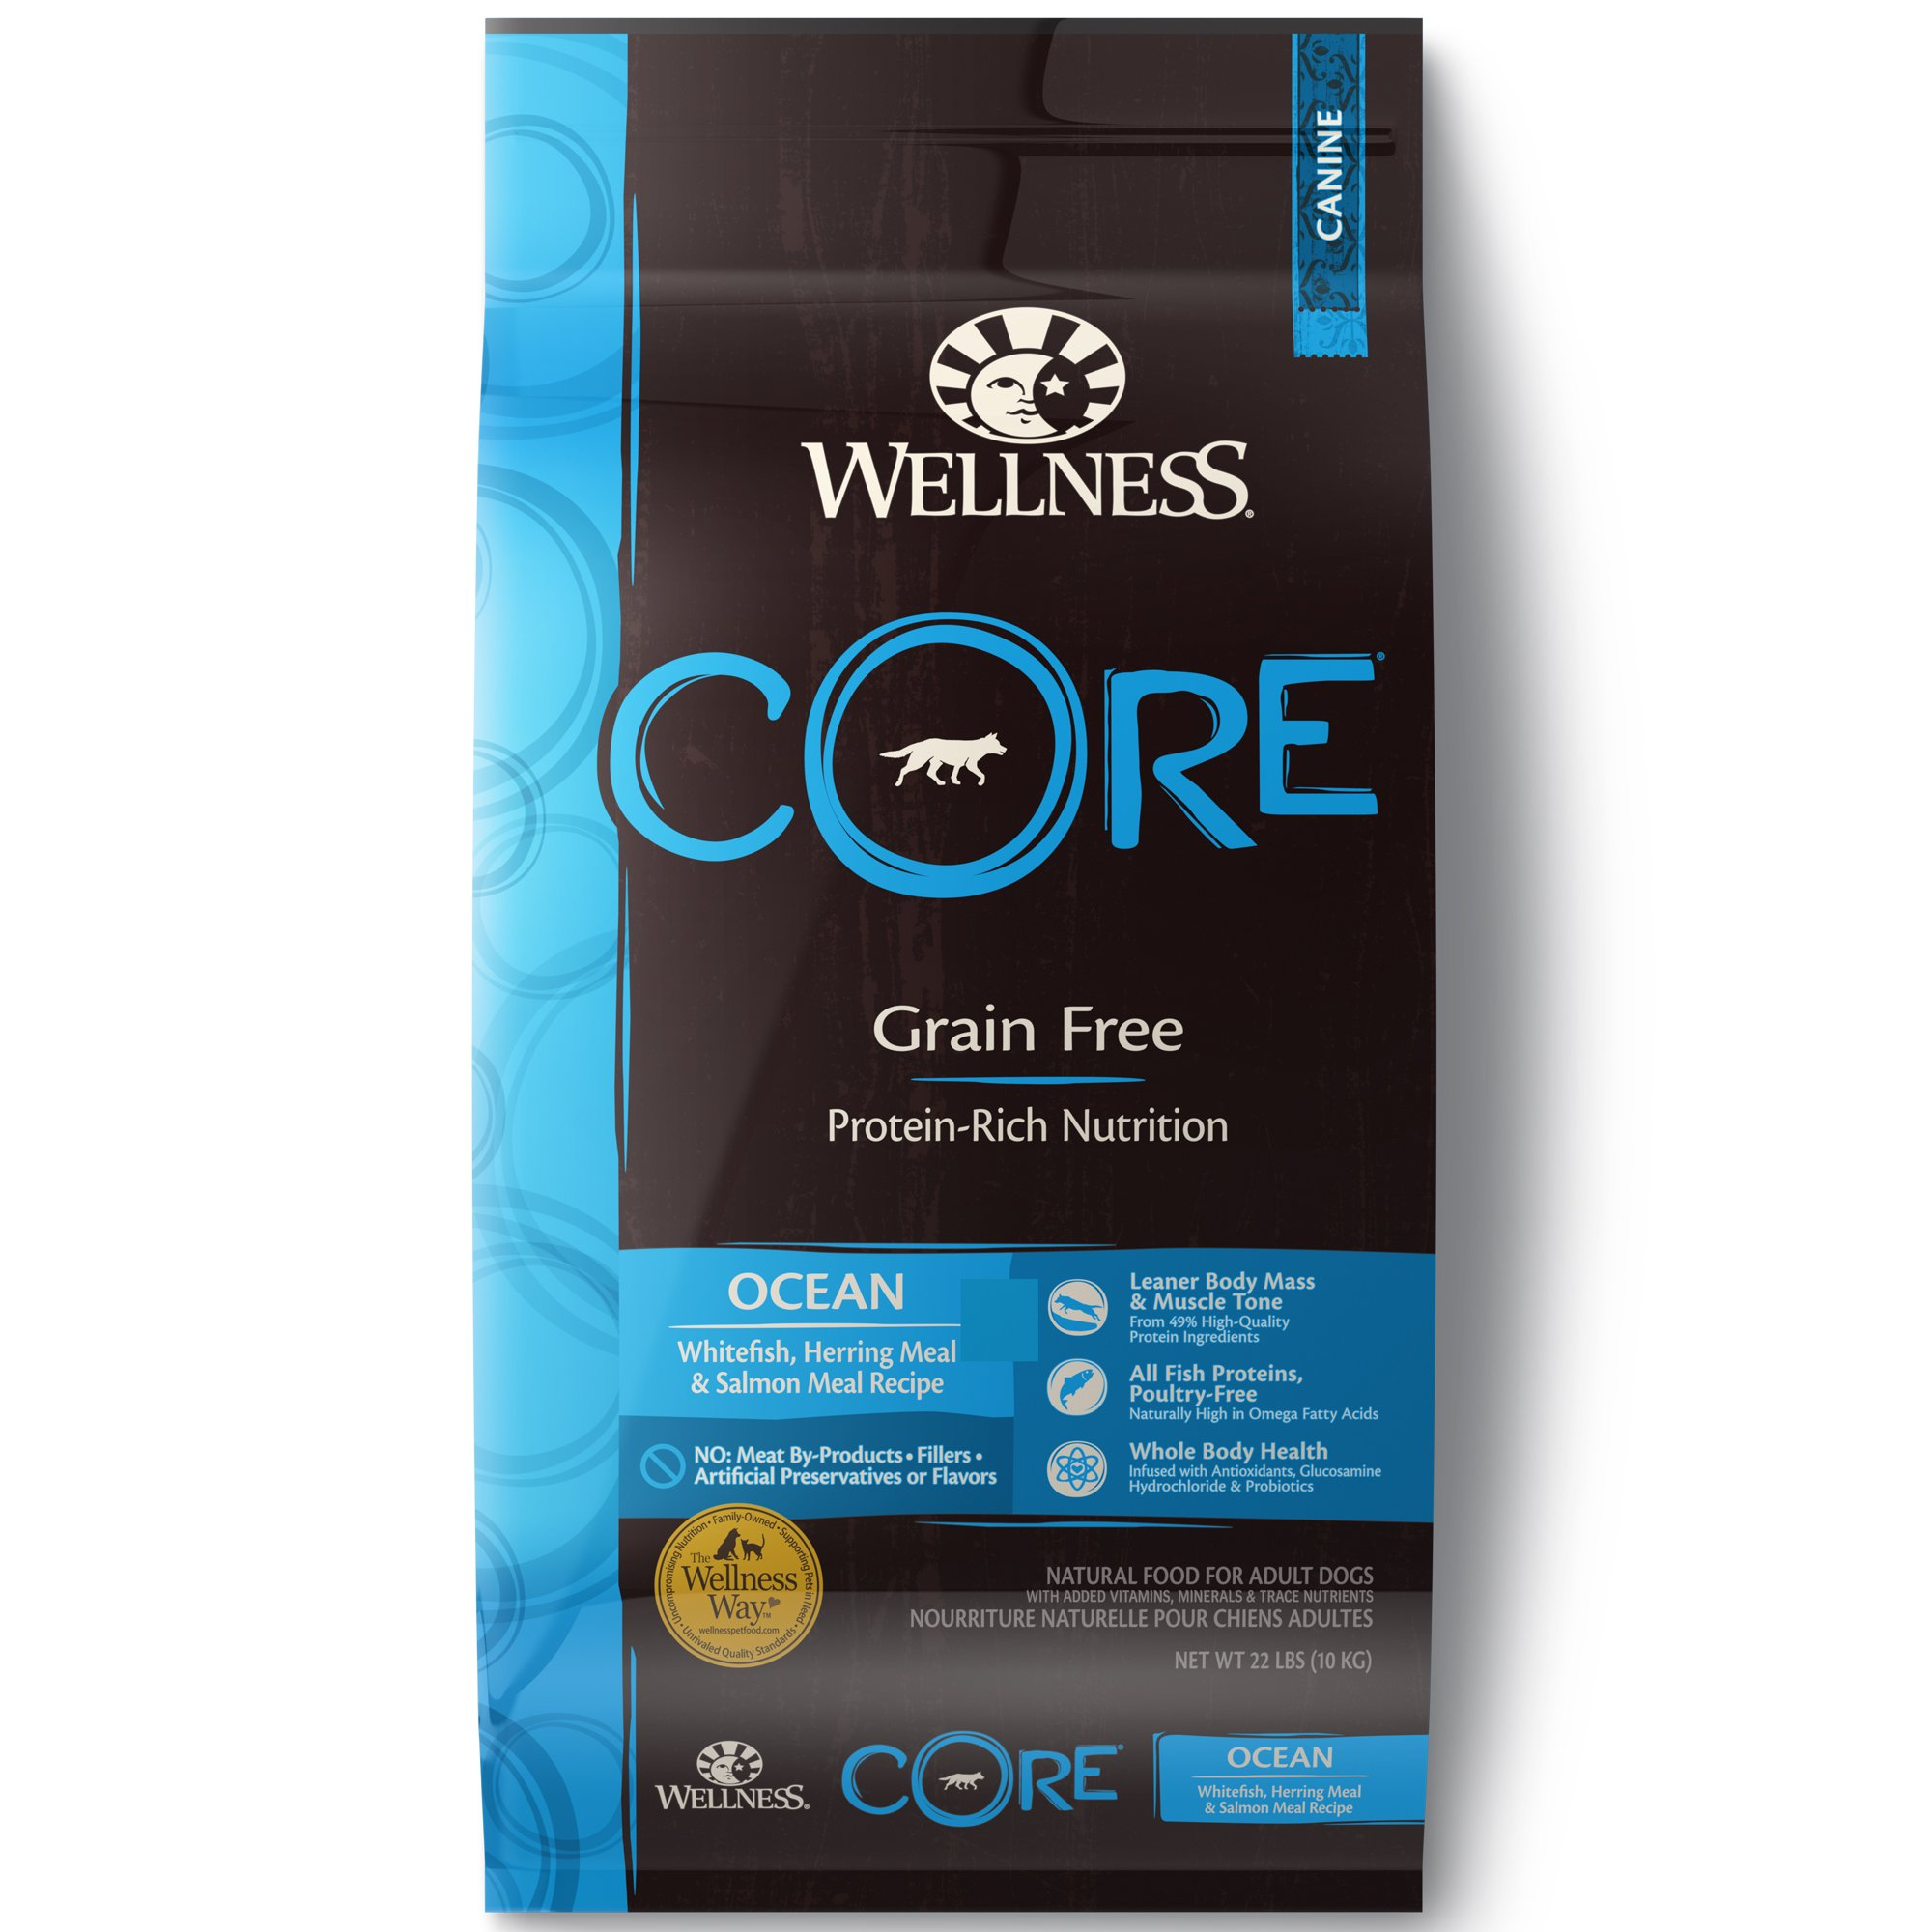 Wellness CORE Natural Grain Free Ocean Recipe Dry Dog Food, 22 lbs.